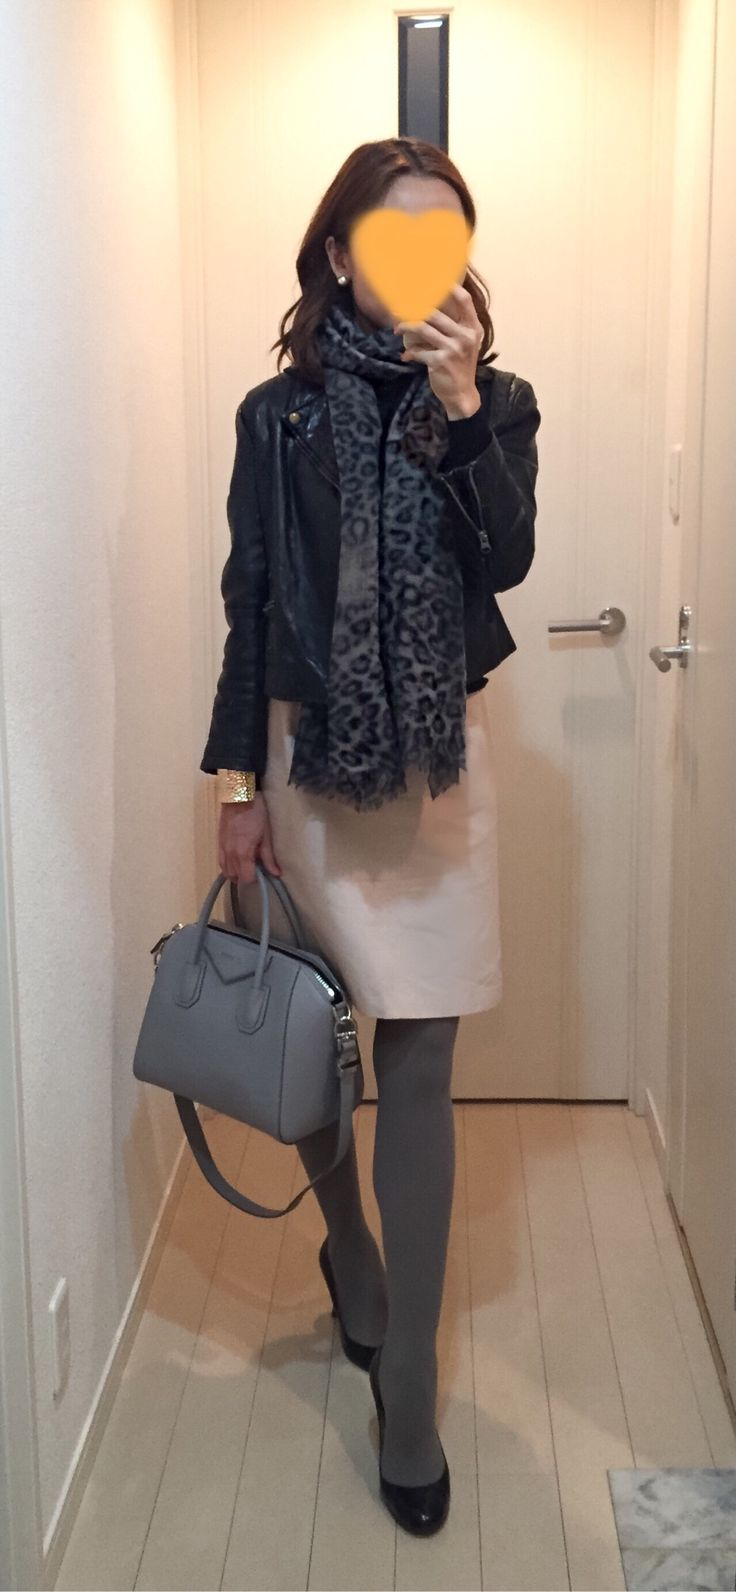 Leather jacket: IENA, Black sweater: Drawer, Pink beige skirt: Ballsey, Bag: GIVENCHY, Pumps: LANVIN en bleu